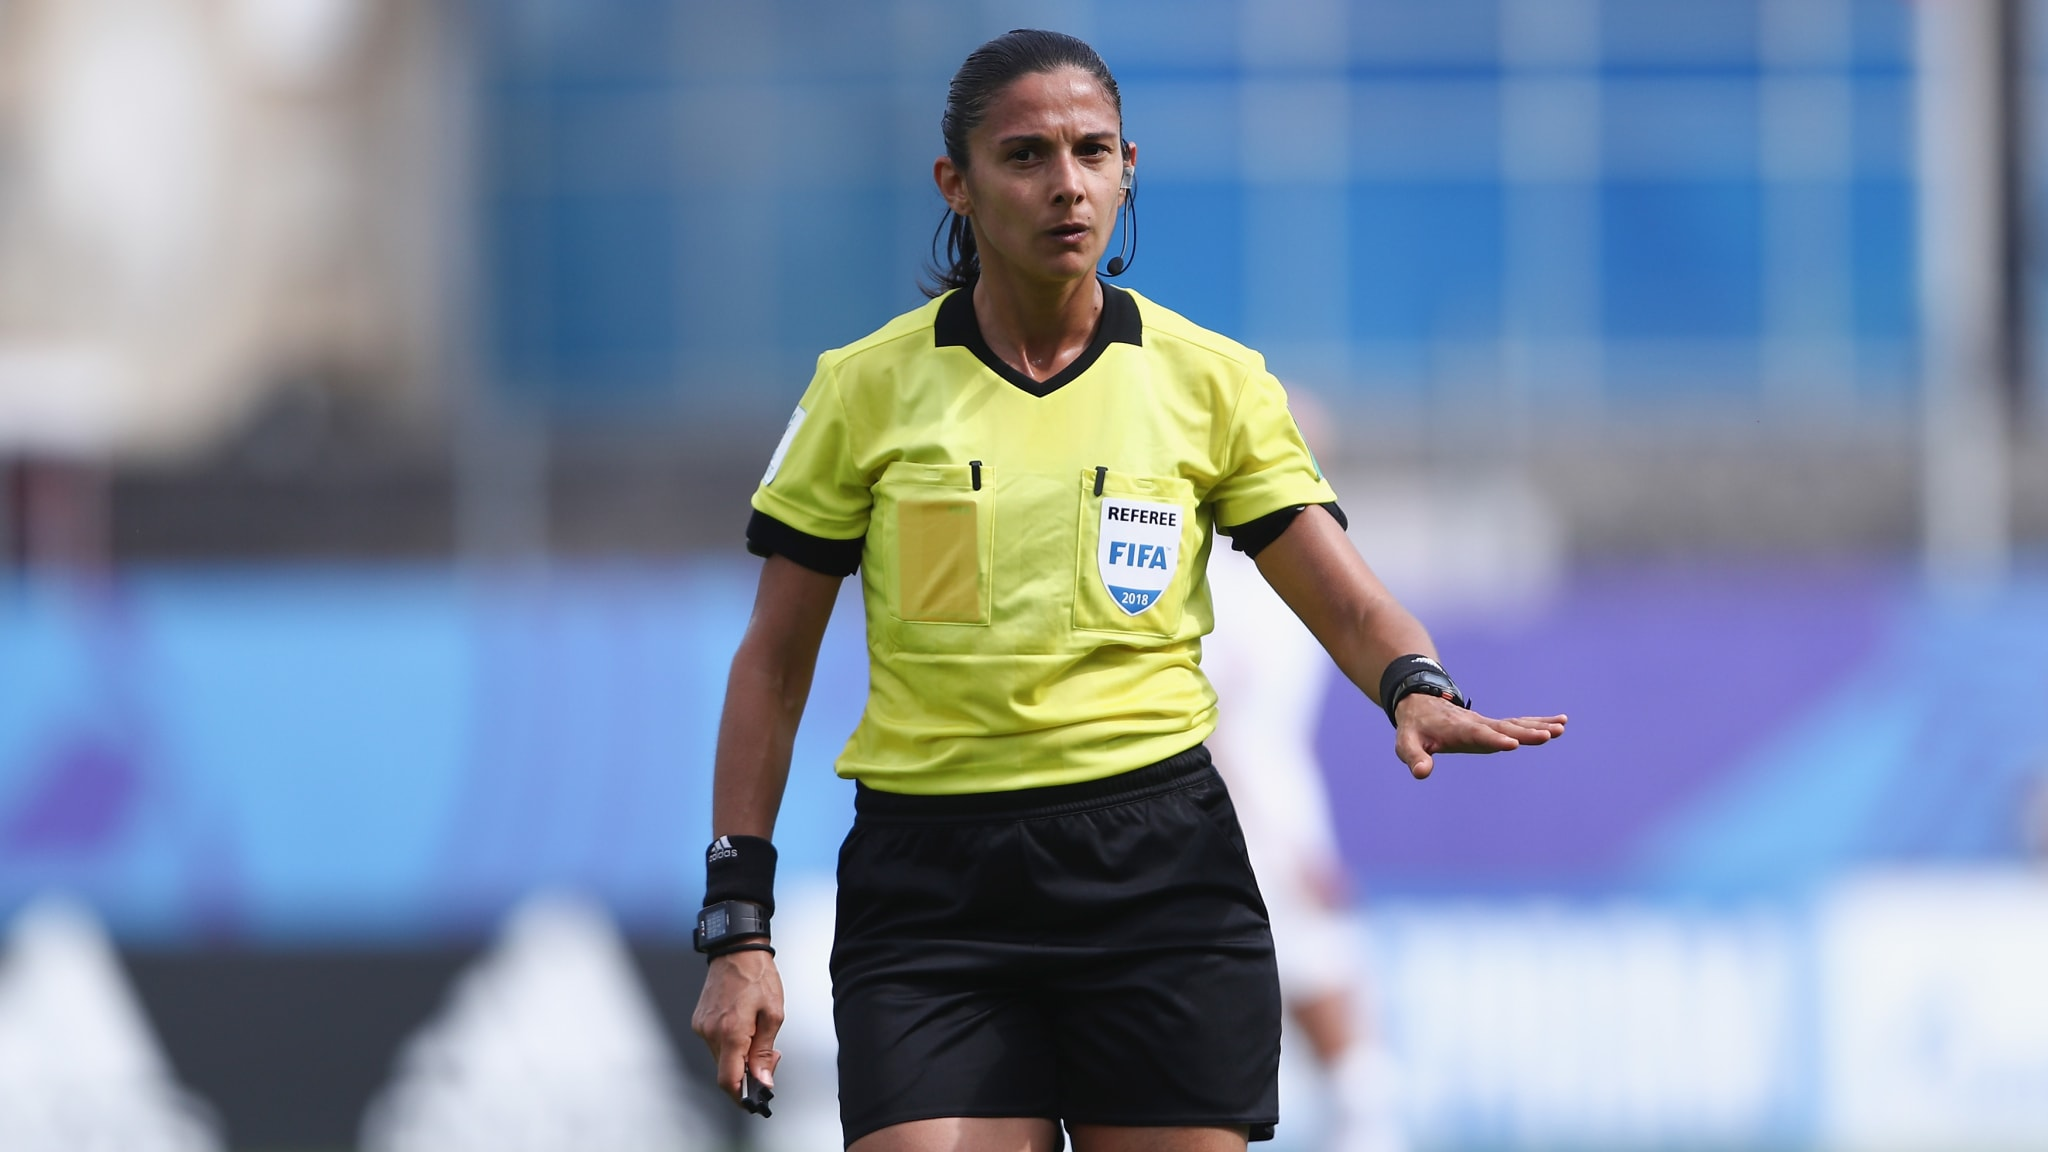 Claudia Umpiérrez (photo FIFA.com)